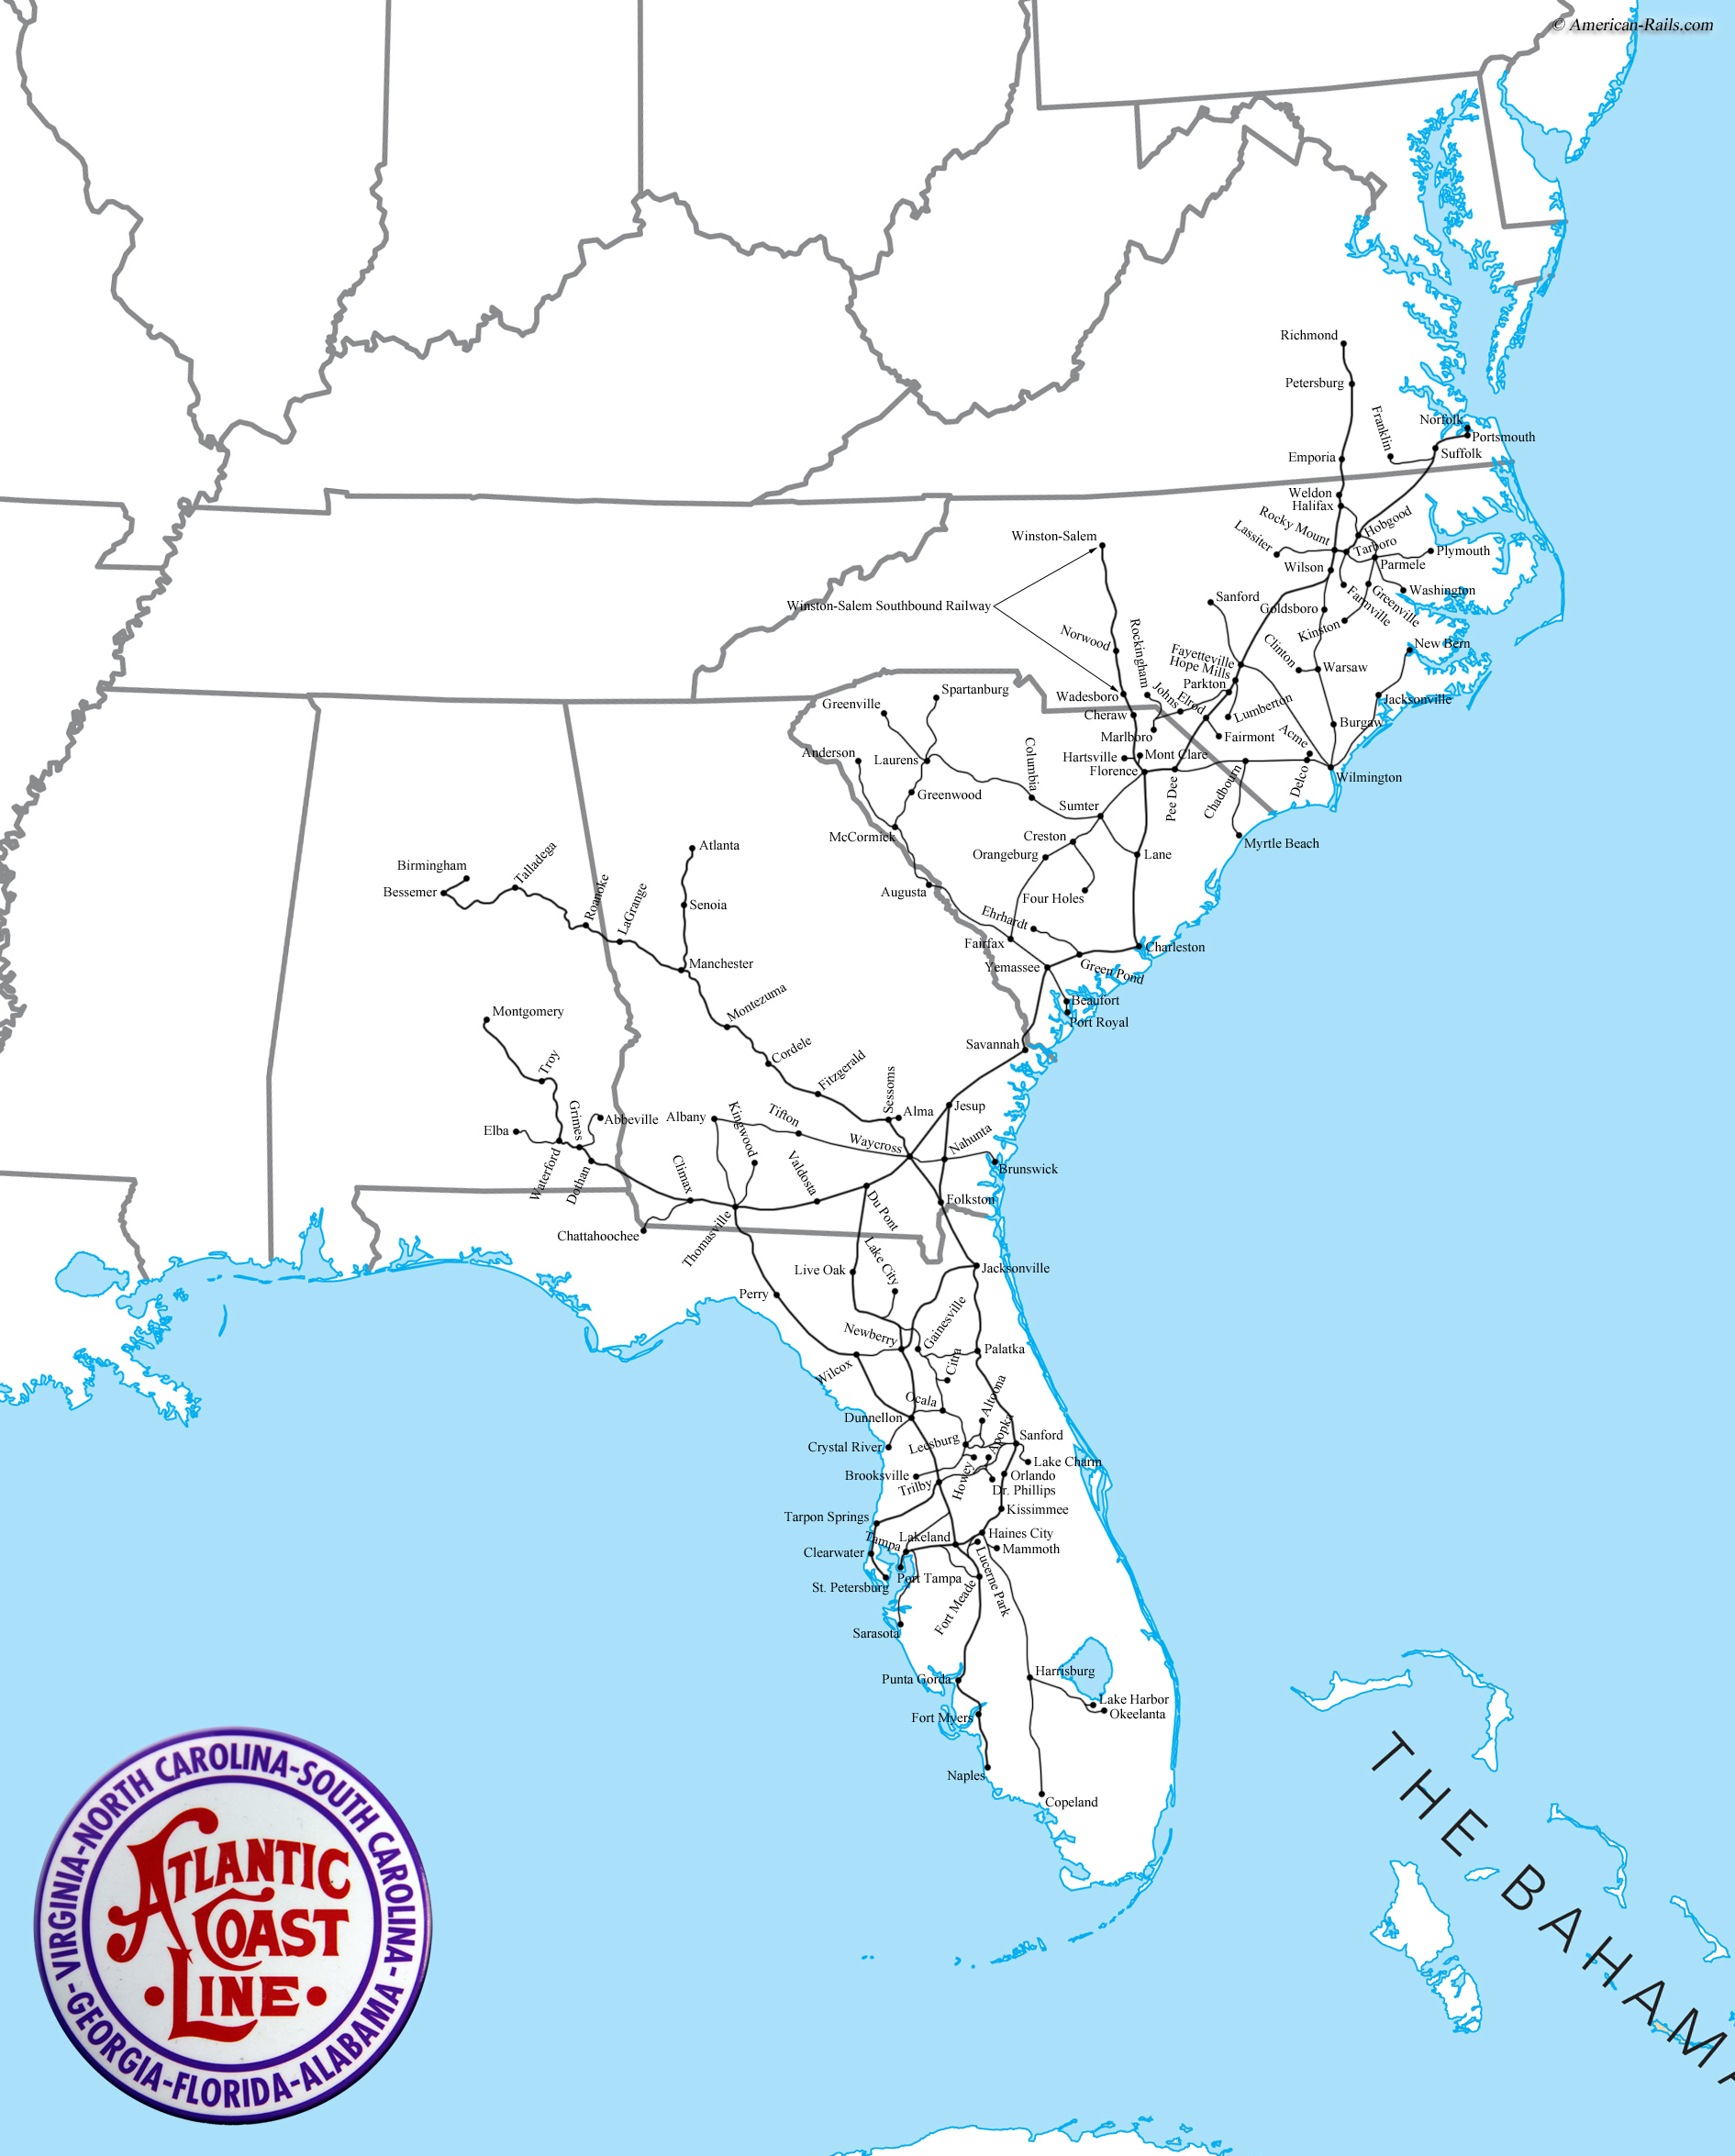 The Atlantic Coast Line Railroad